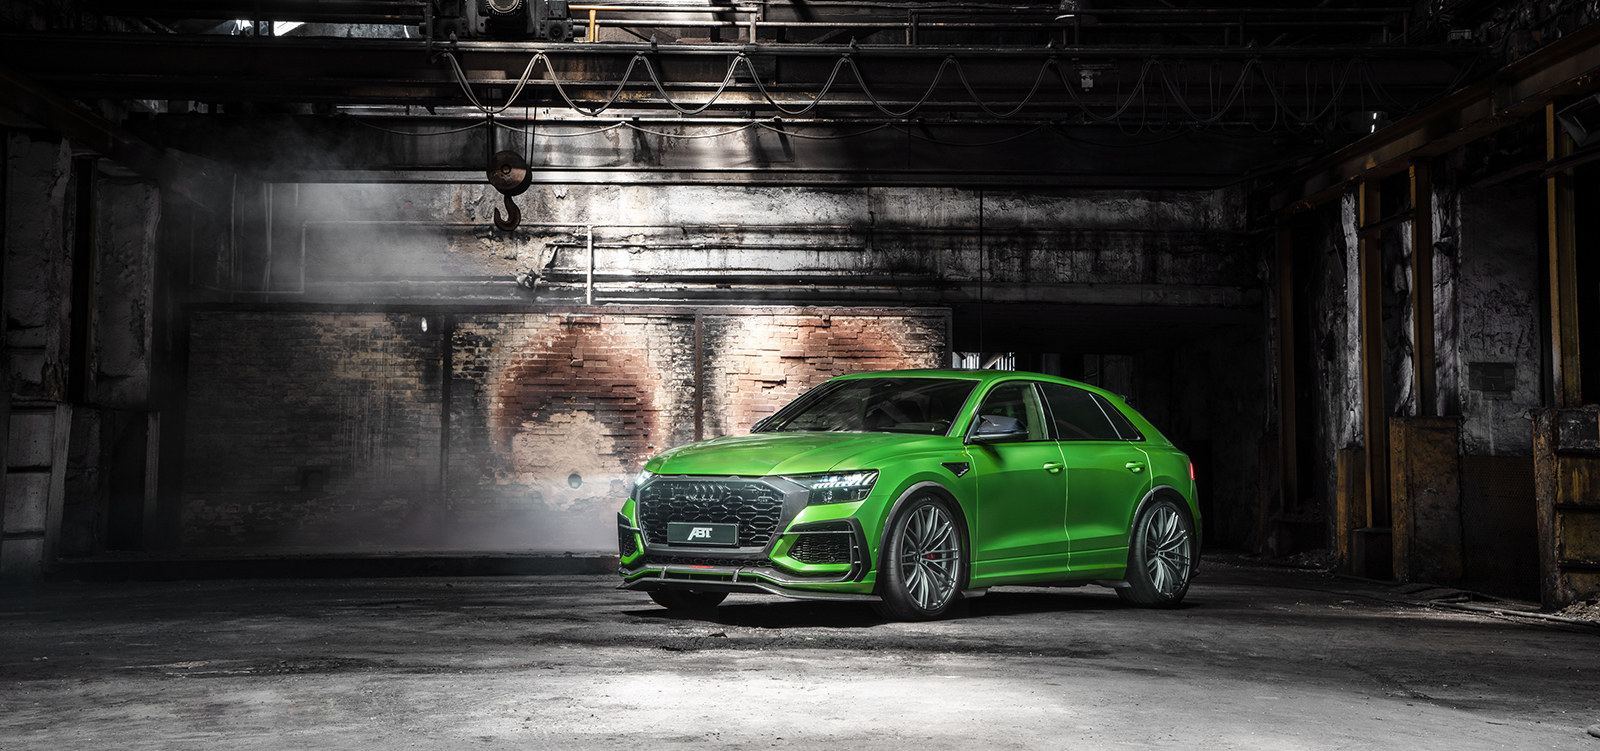 ABT_RSQ8-R_green_HR23_building_front_diagonally